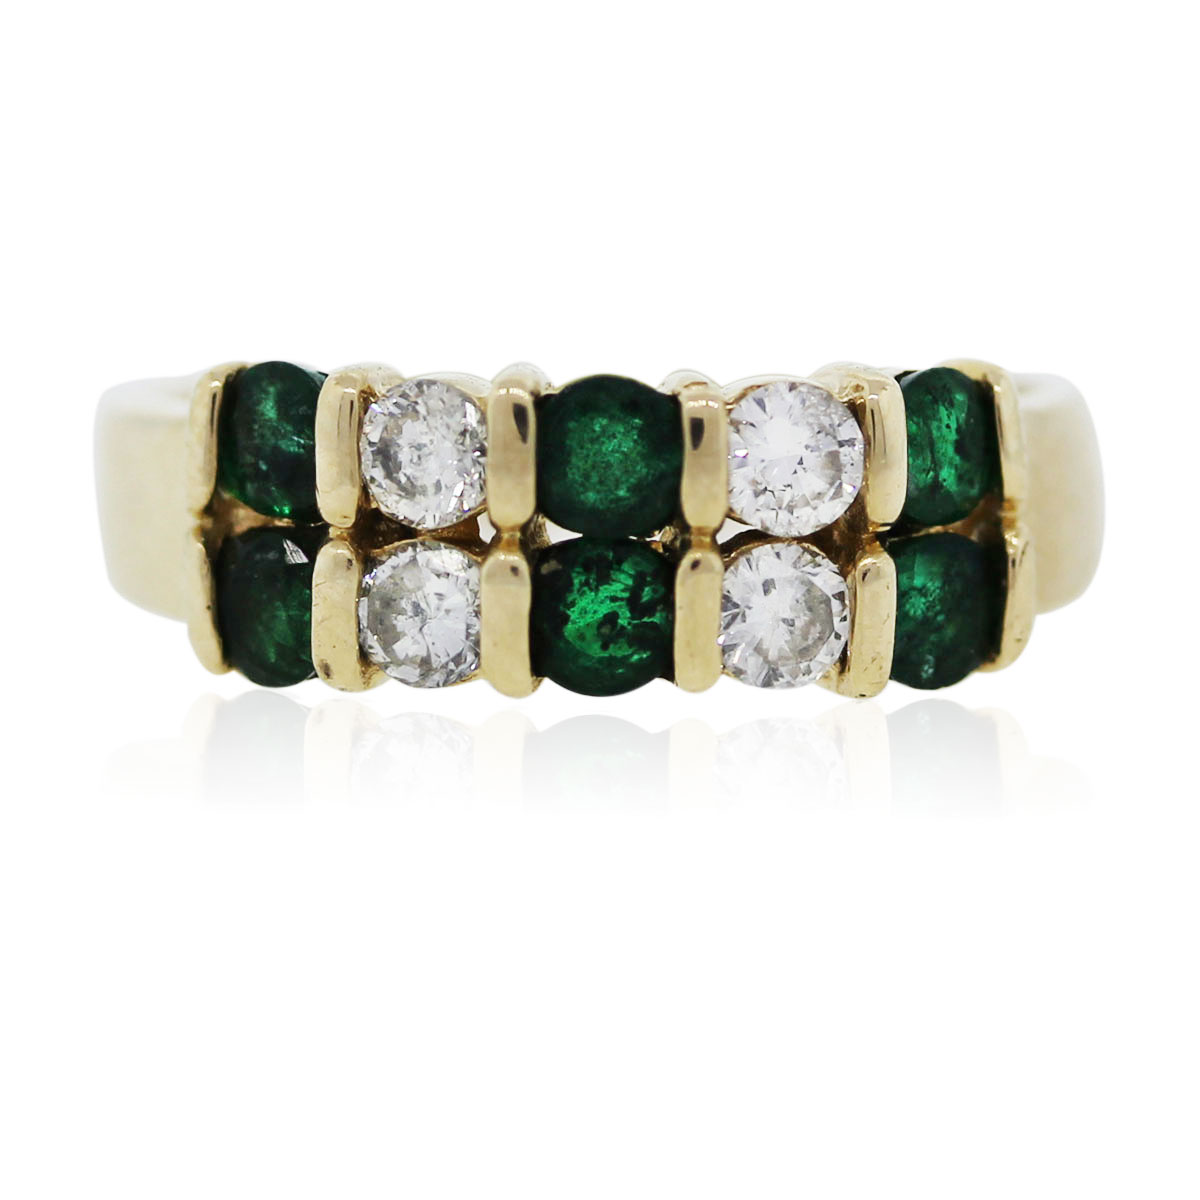 You are viewing this yellow gold emerald and diamond ring!